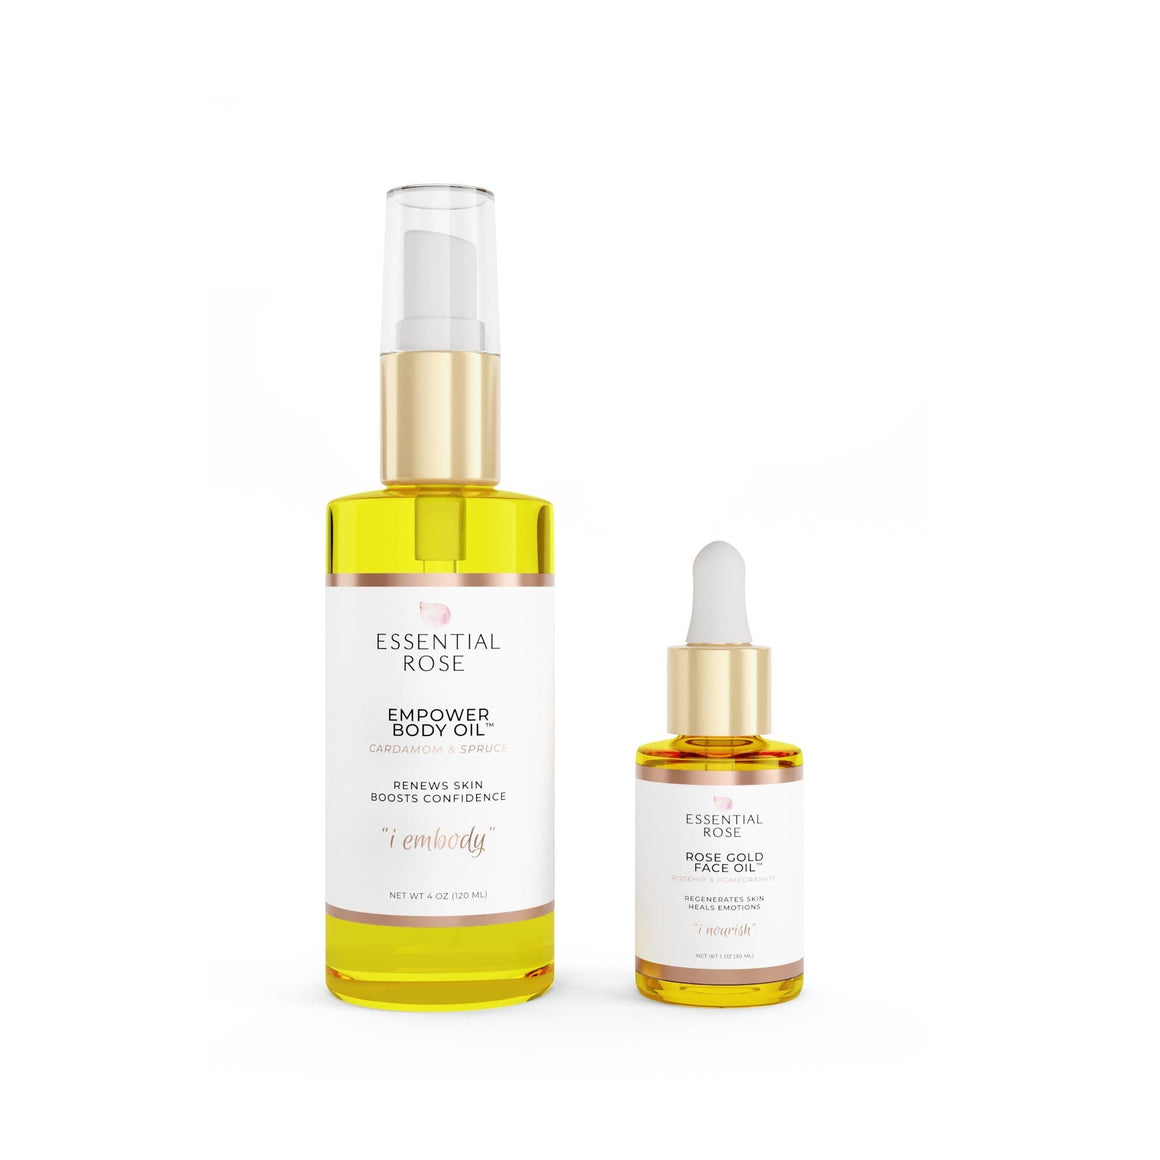 Deluxe Oil Set - Essential Rose Life